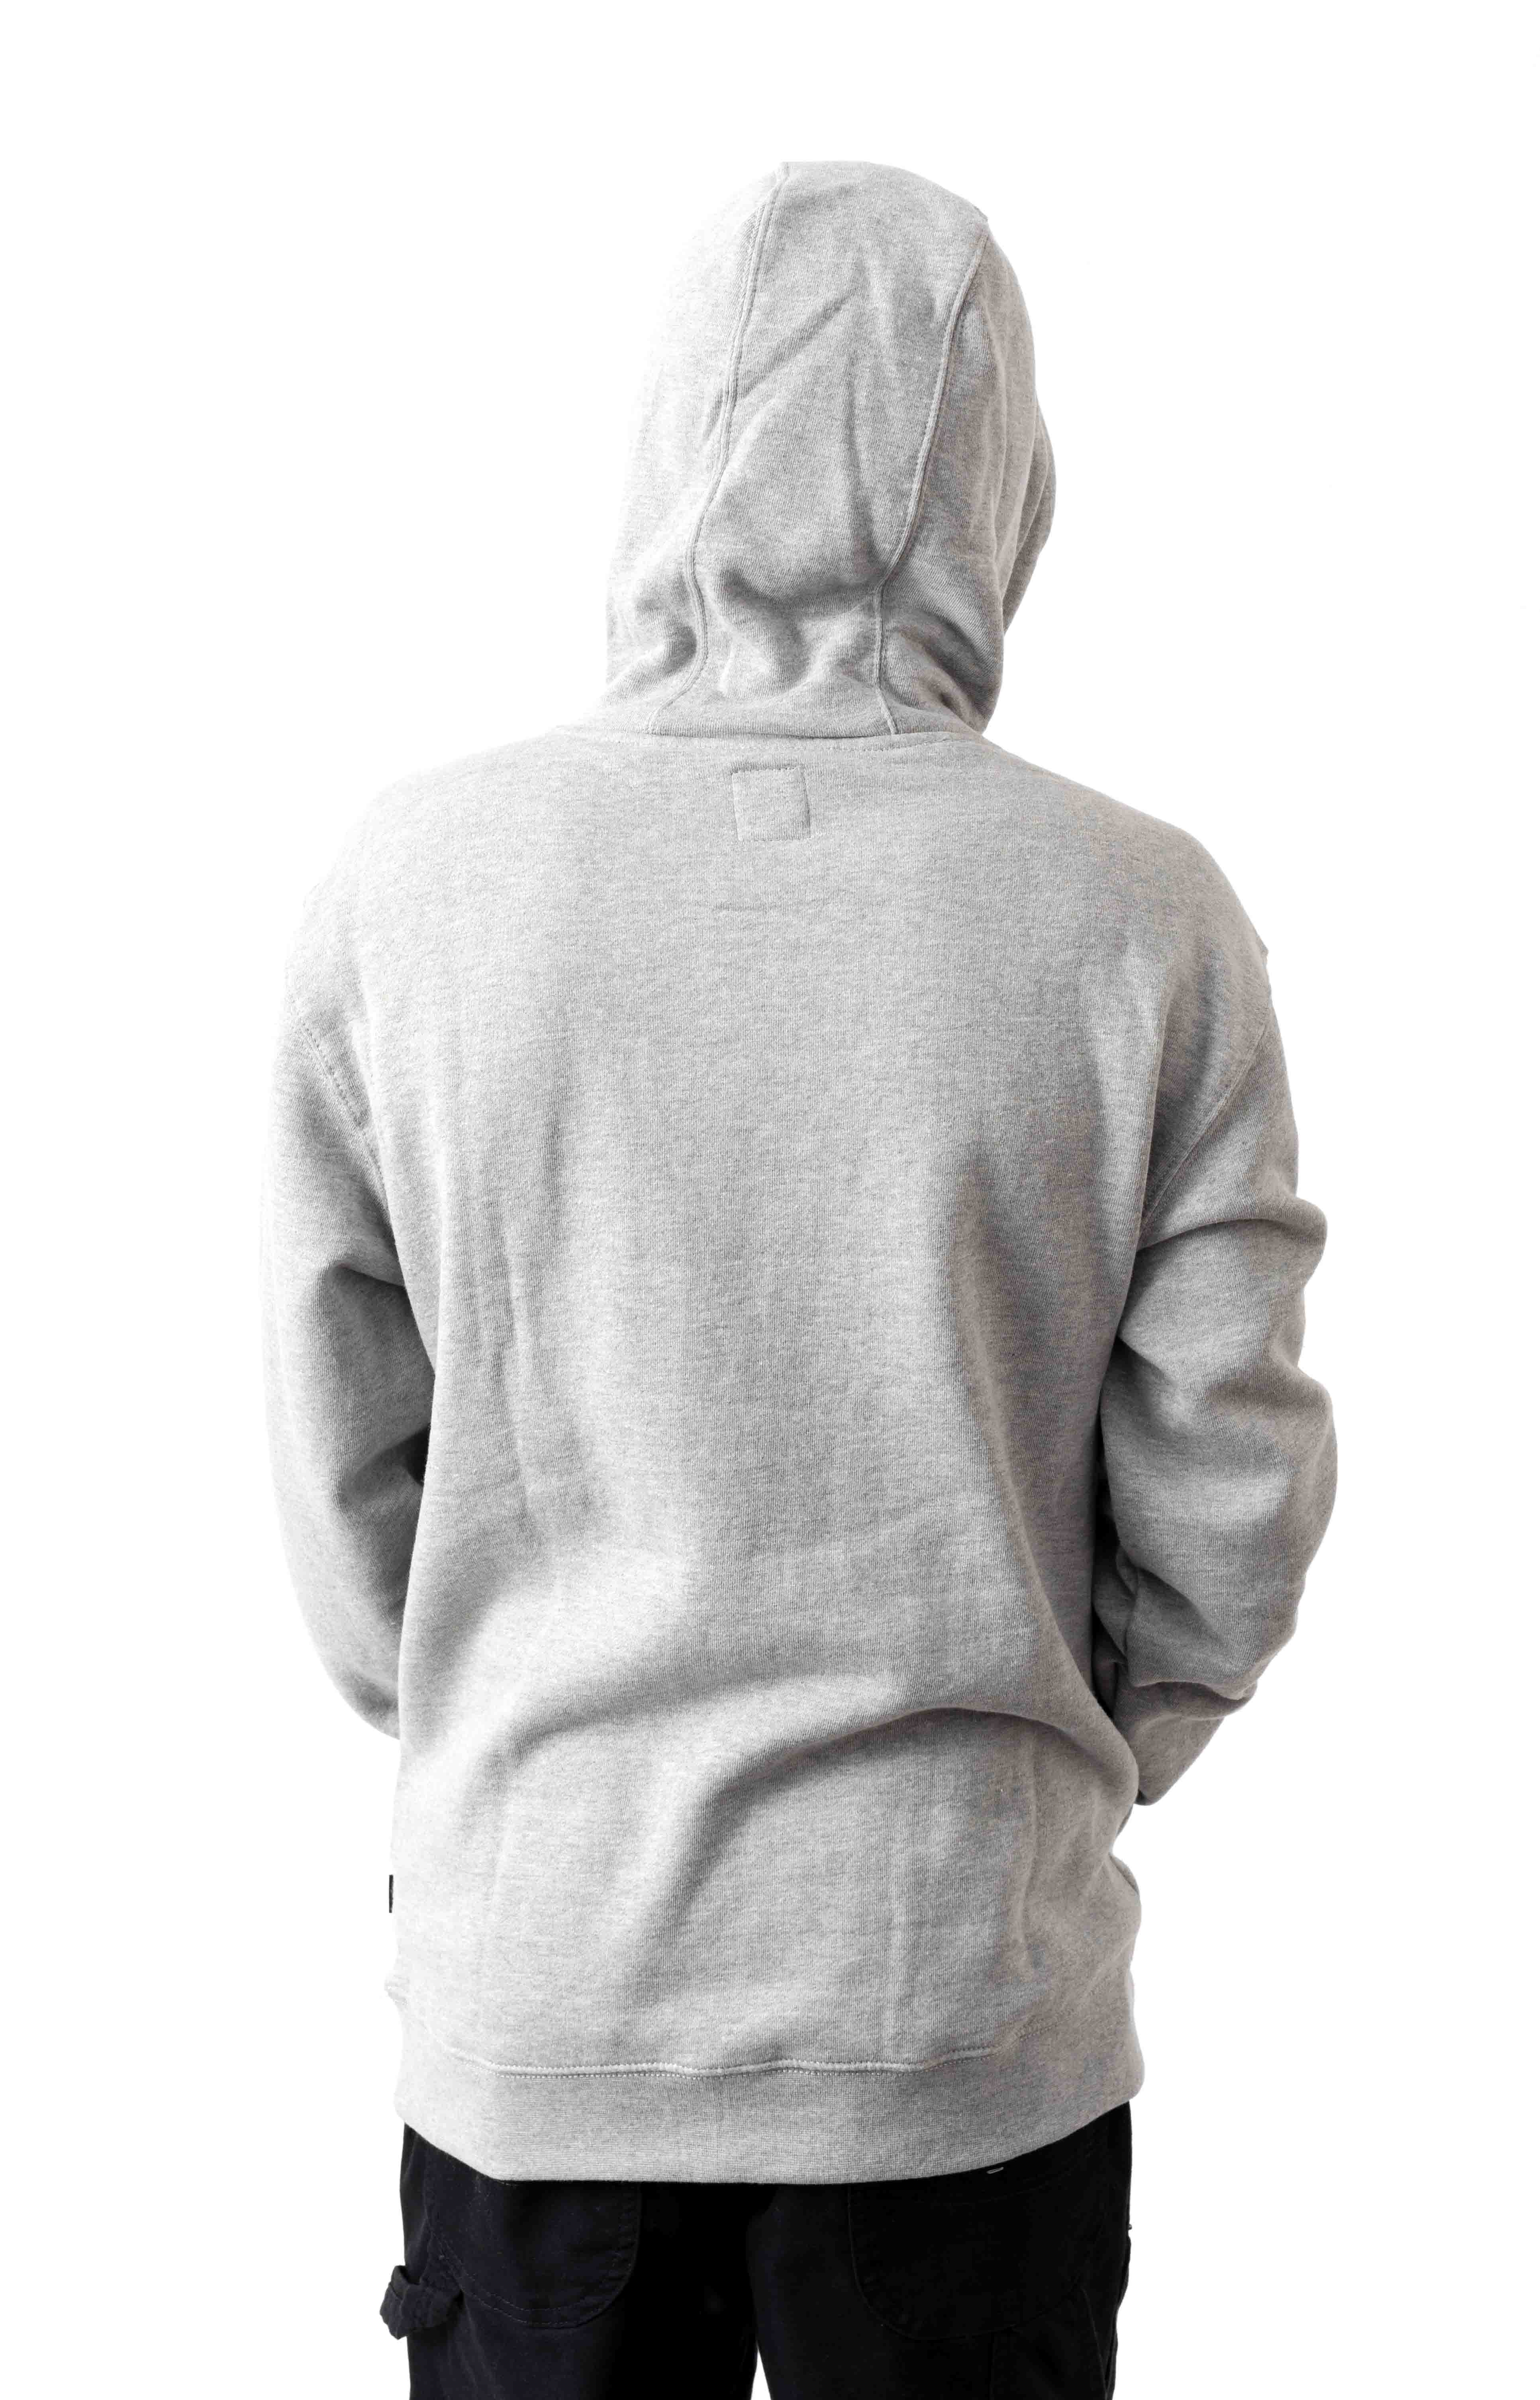 Vans Classic Pullover Hoodie - Cement Heather/Black 3